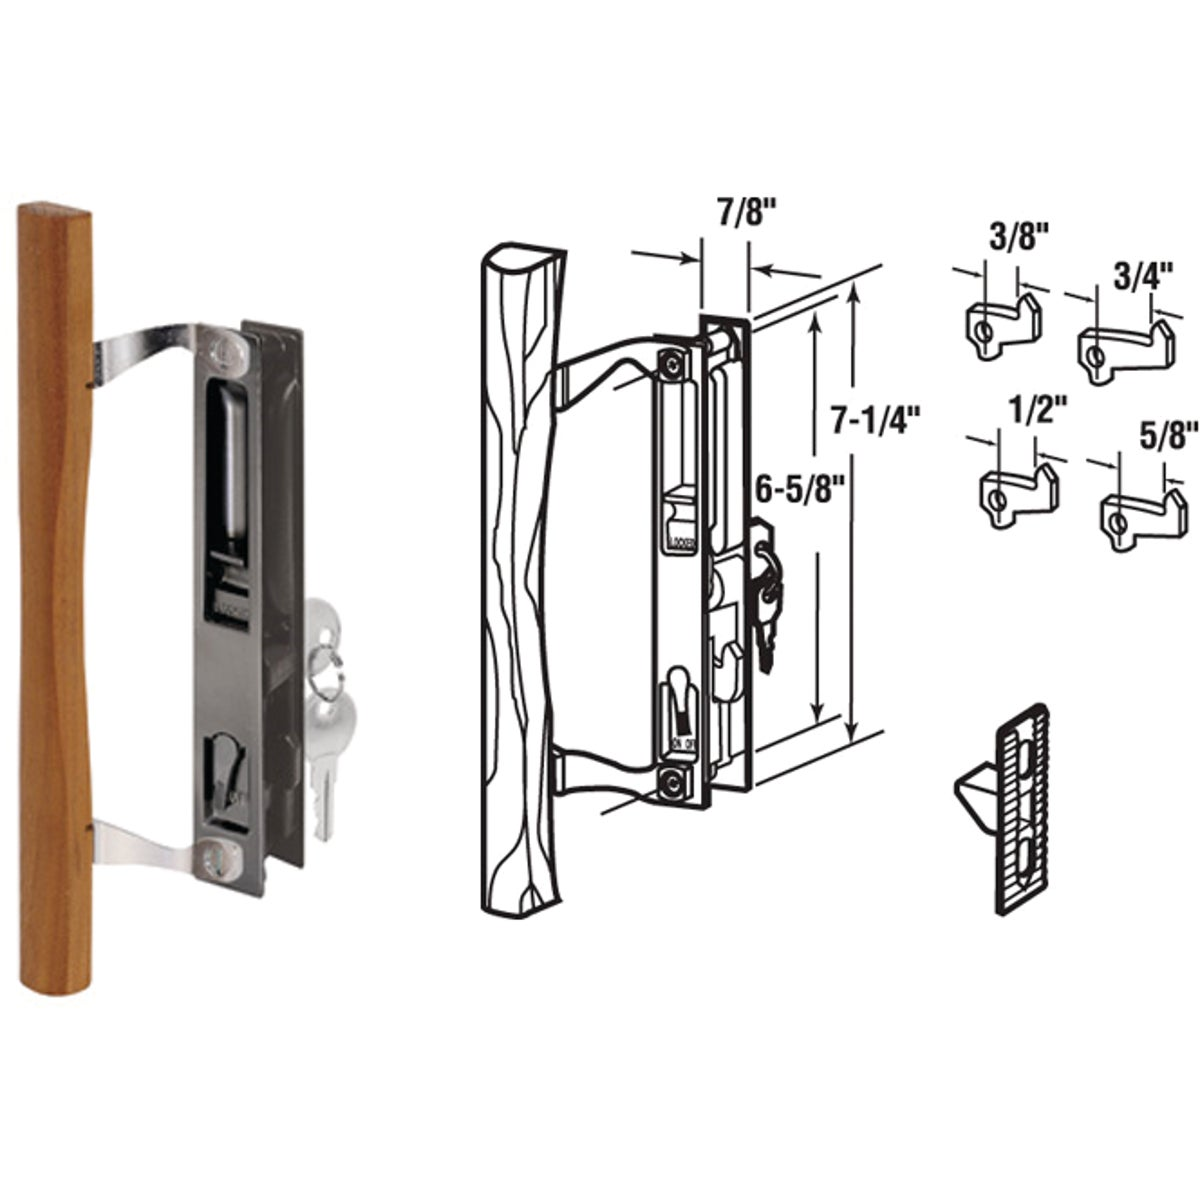 SLIDING DOOR HANDLESET